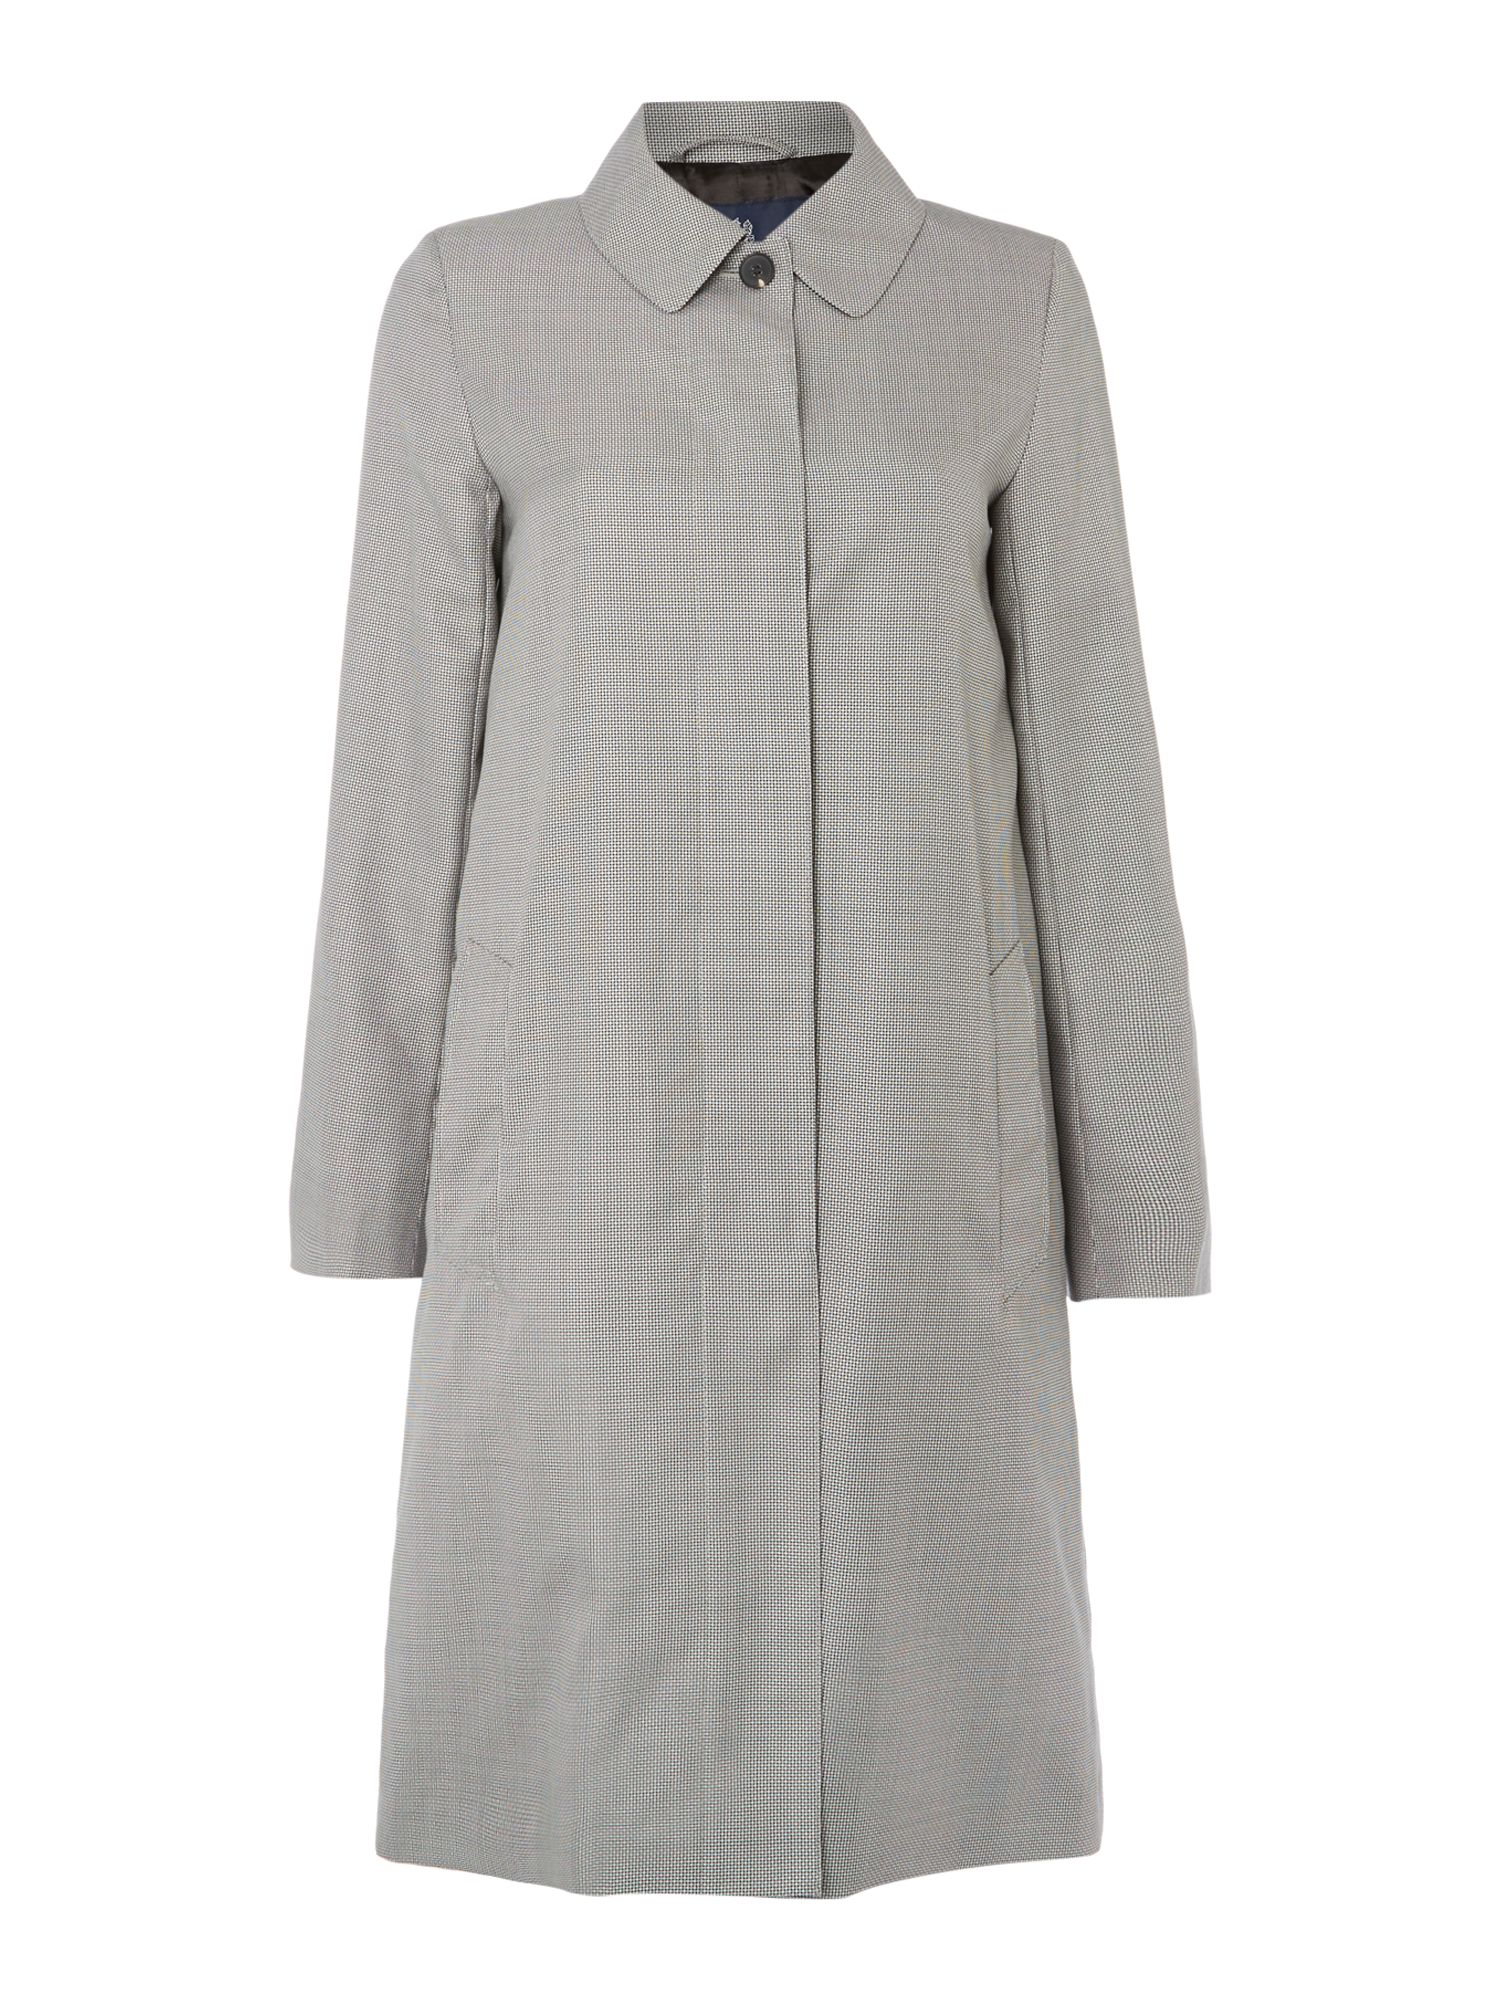 Aquascutum Dulwich Puppy Tooth Trench, Black